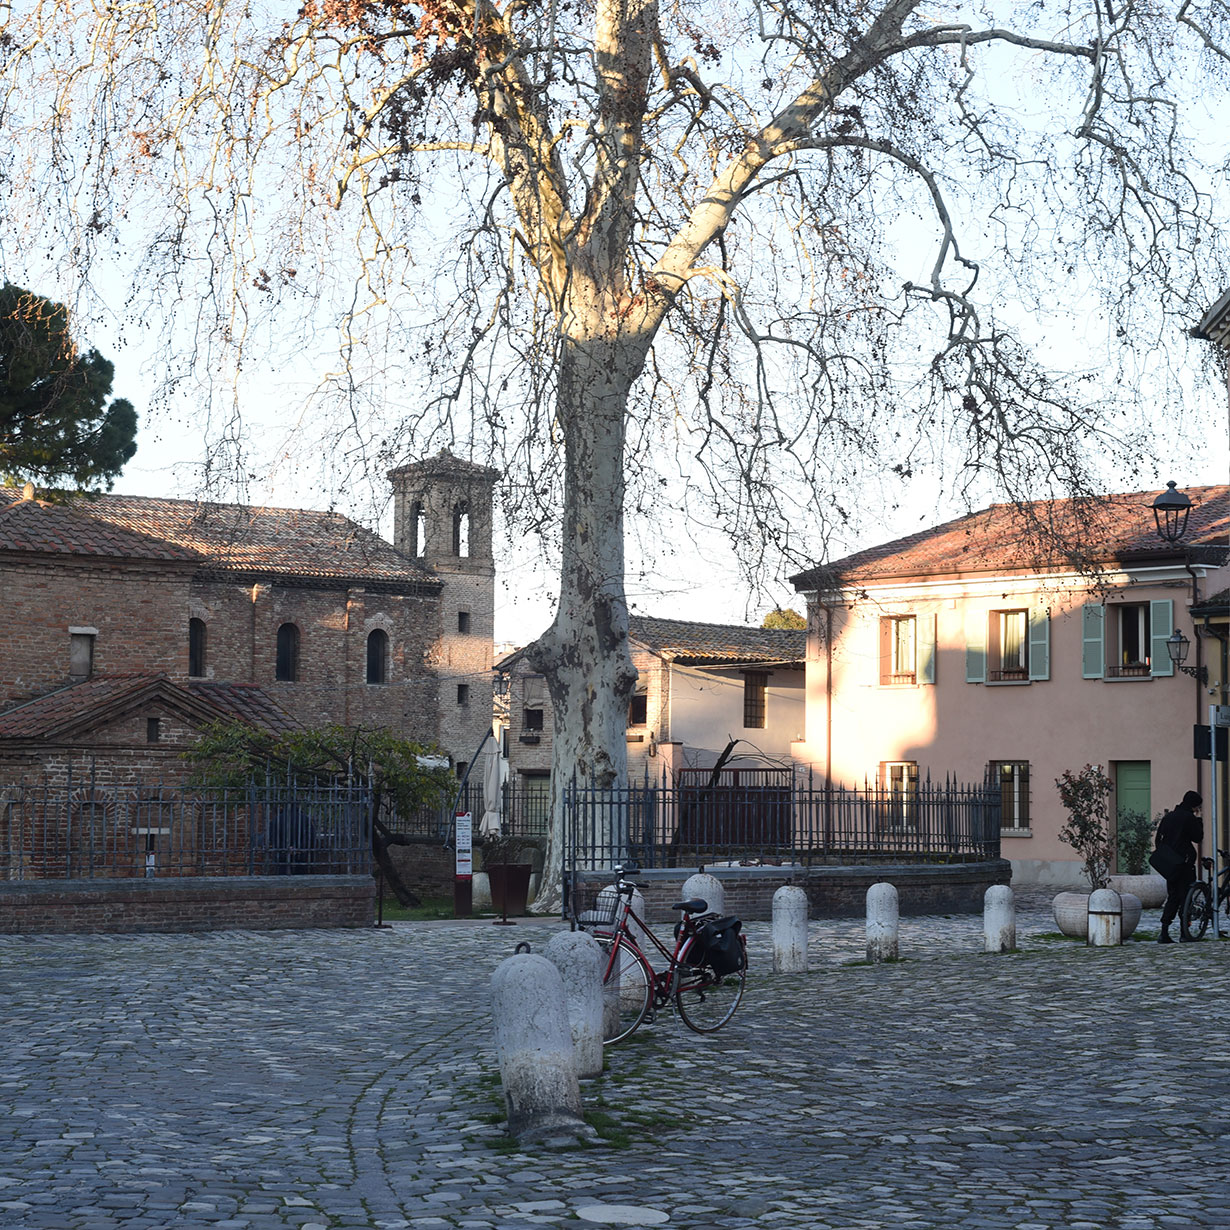 Old streets of Ravenna, Italy